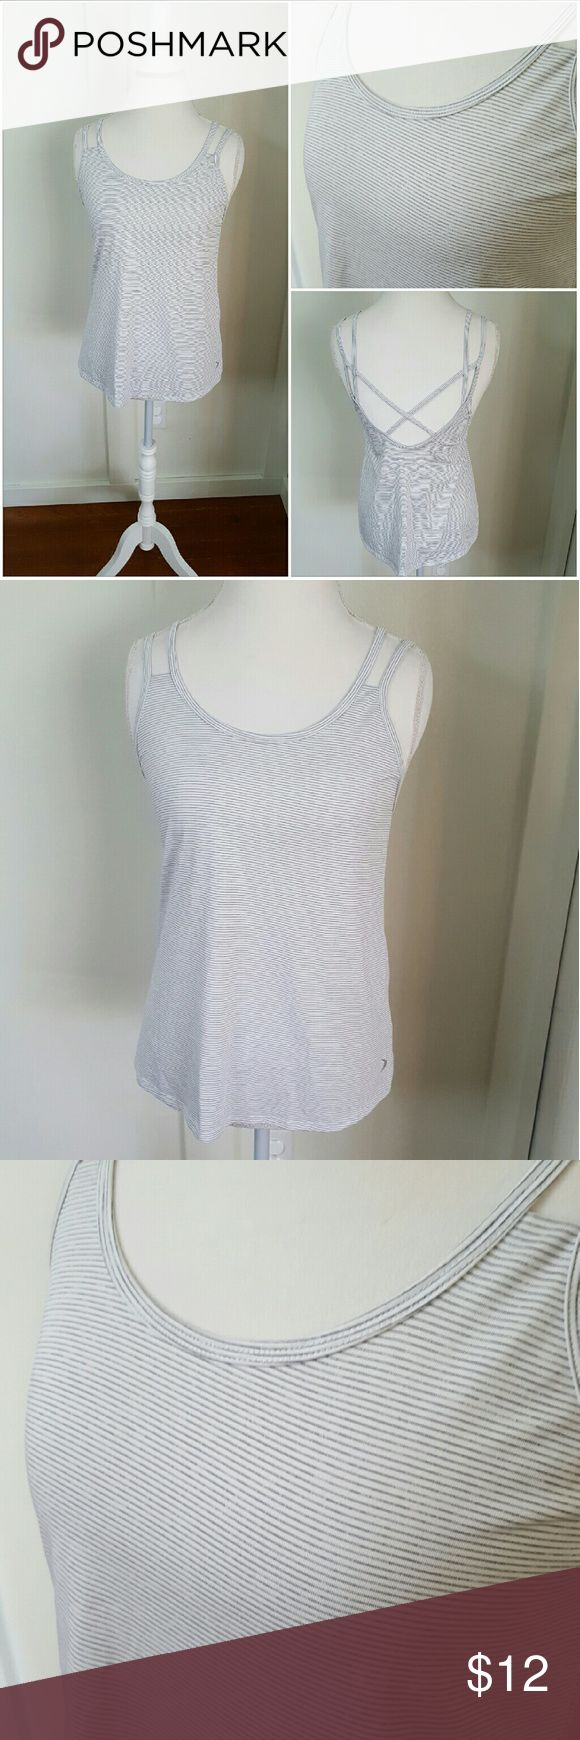 OLD NAVY MEDIUM  WHITE WITH BLACK STRIPES CAMI Old Navy Active medium white fitness cami with black stripes. Perfect for workouts or for layering. Pre-owned and in good condition. Old Navy Tops Camisoles